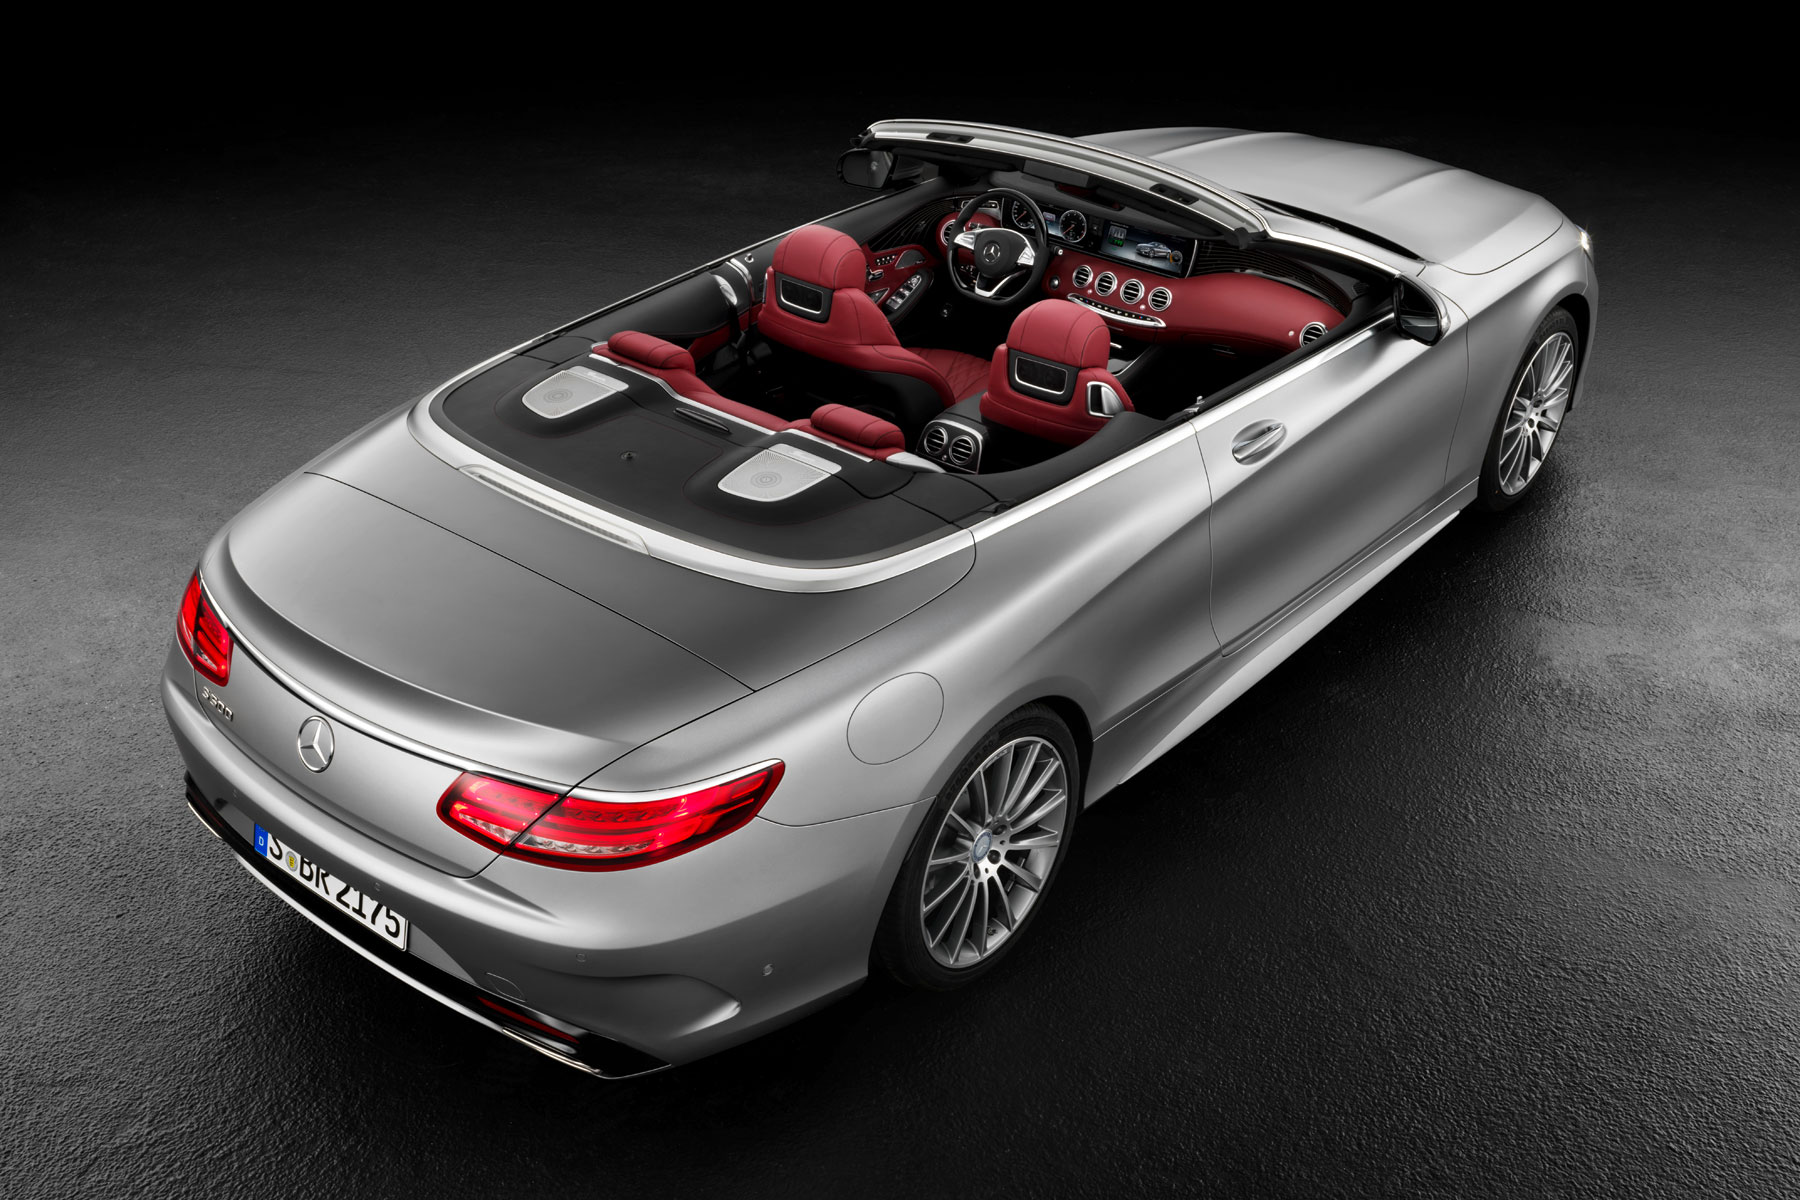 Mercedes-Benz S-Class cabriolet revealed ahead of Frankfurt debut